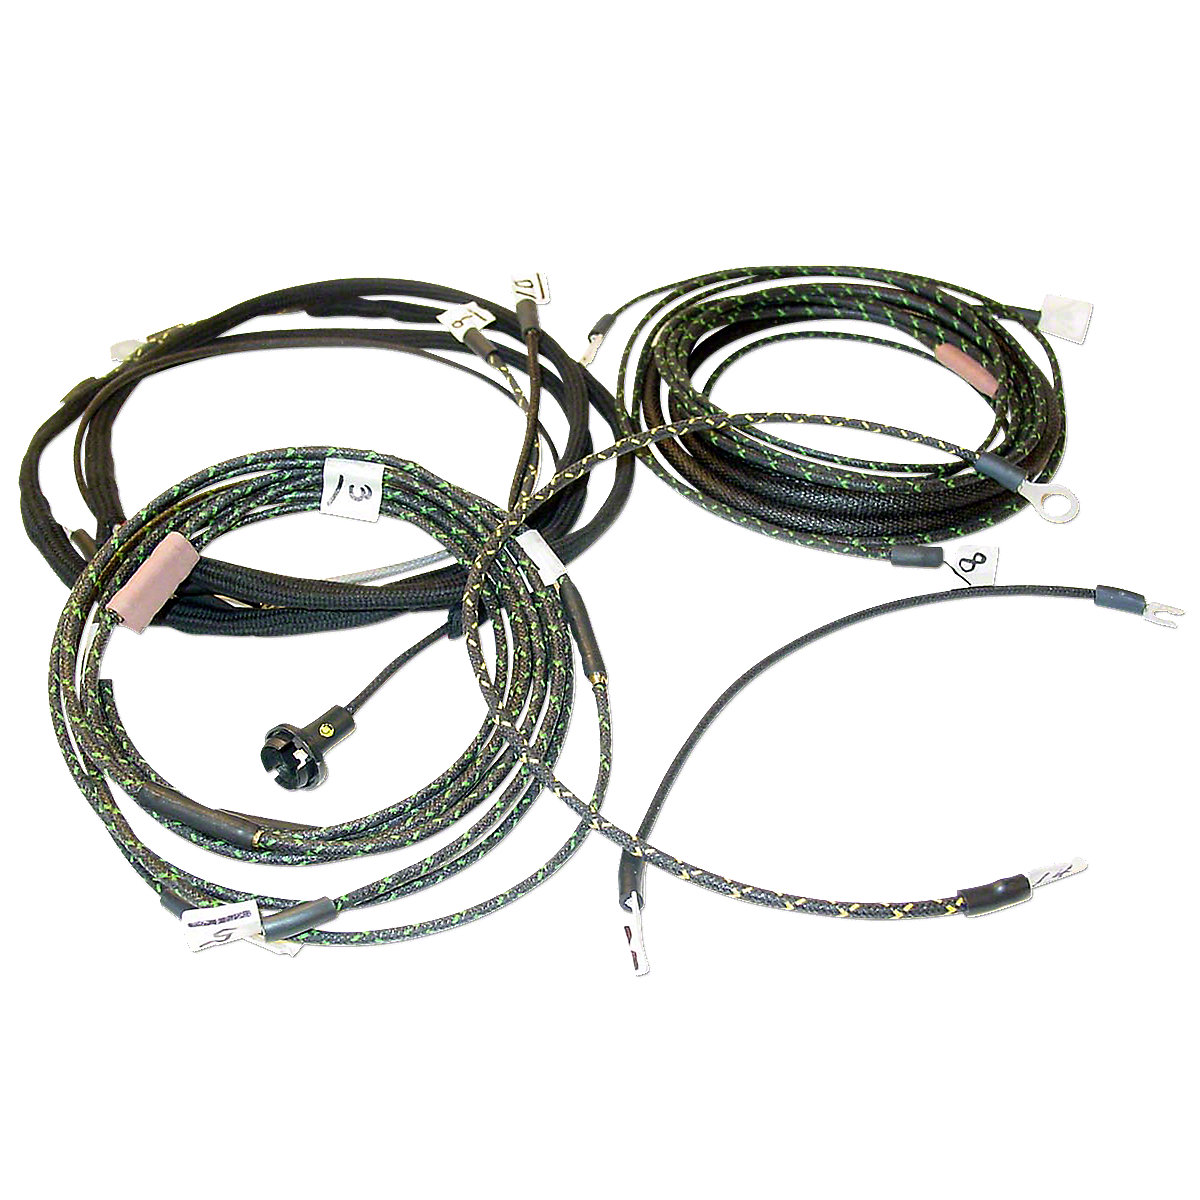 mfs146 wiring harness for massey ferguson to20. Black Bedroom Furniture Sets. Home Design Ideas